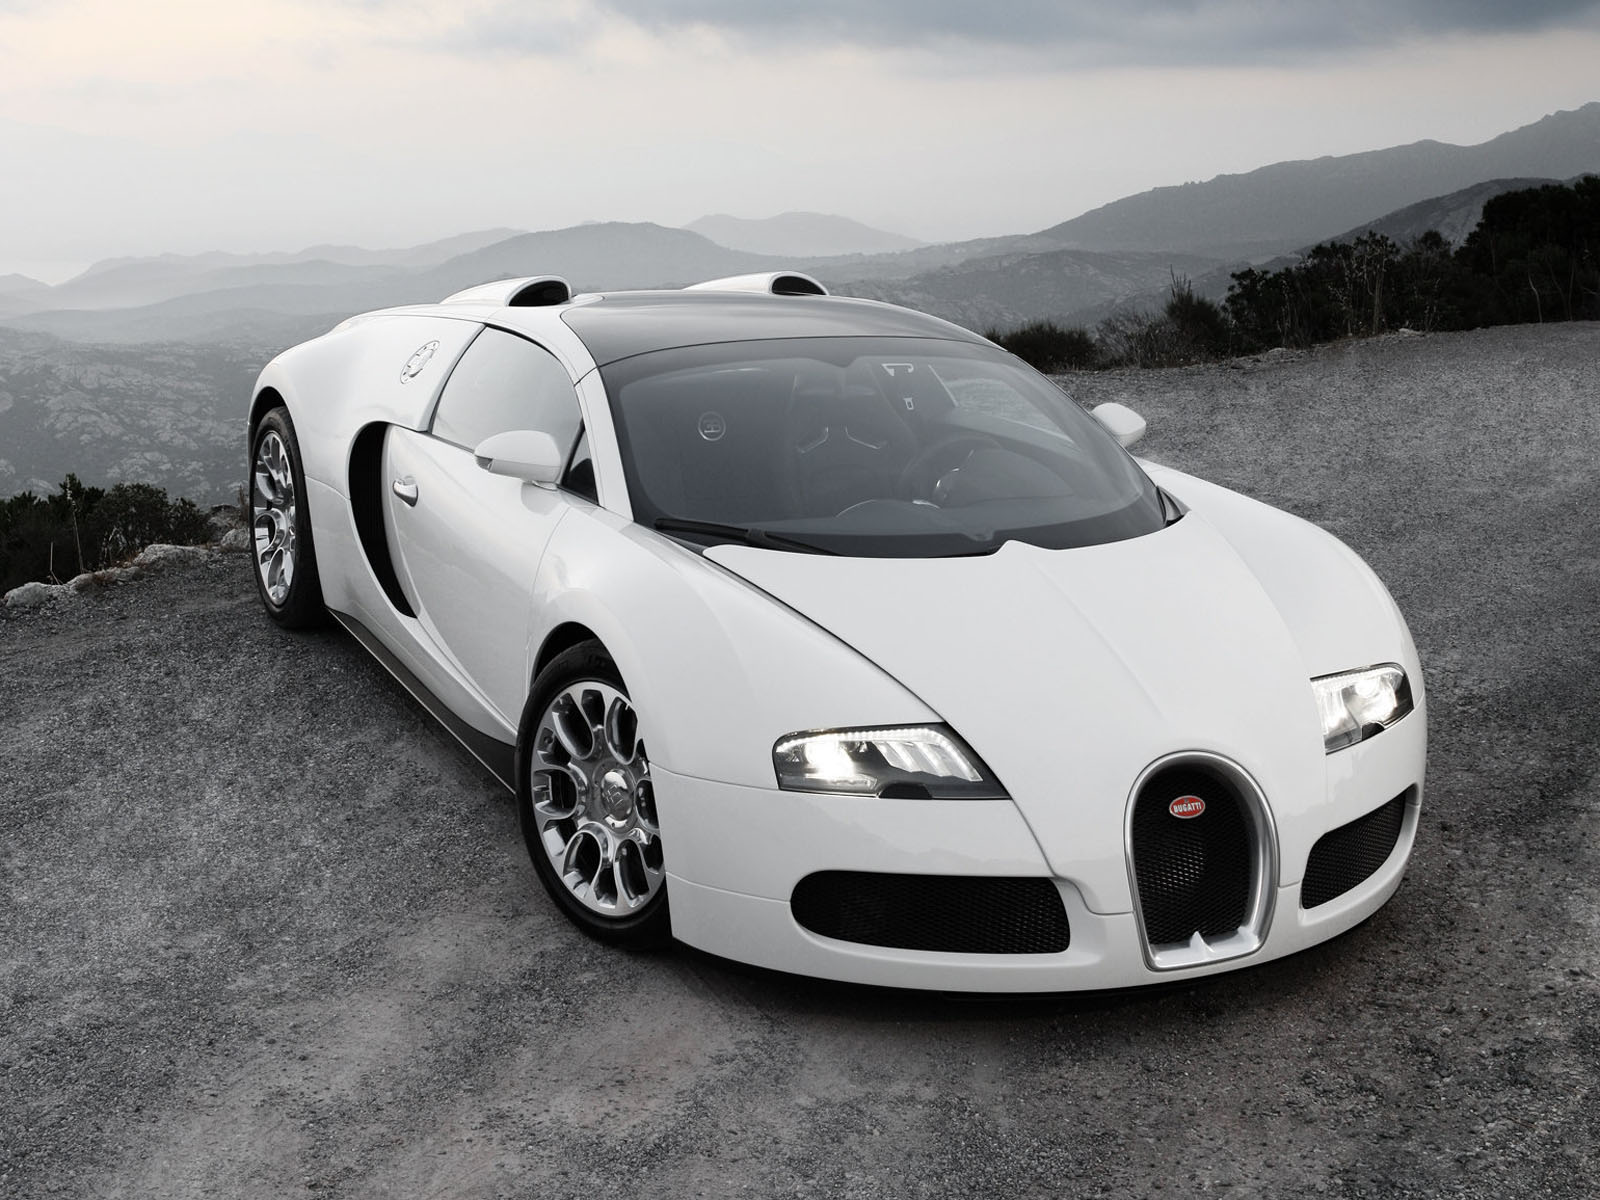 bugatti veyron wallpaper Cool Car Wallpapers 1600x1200